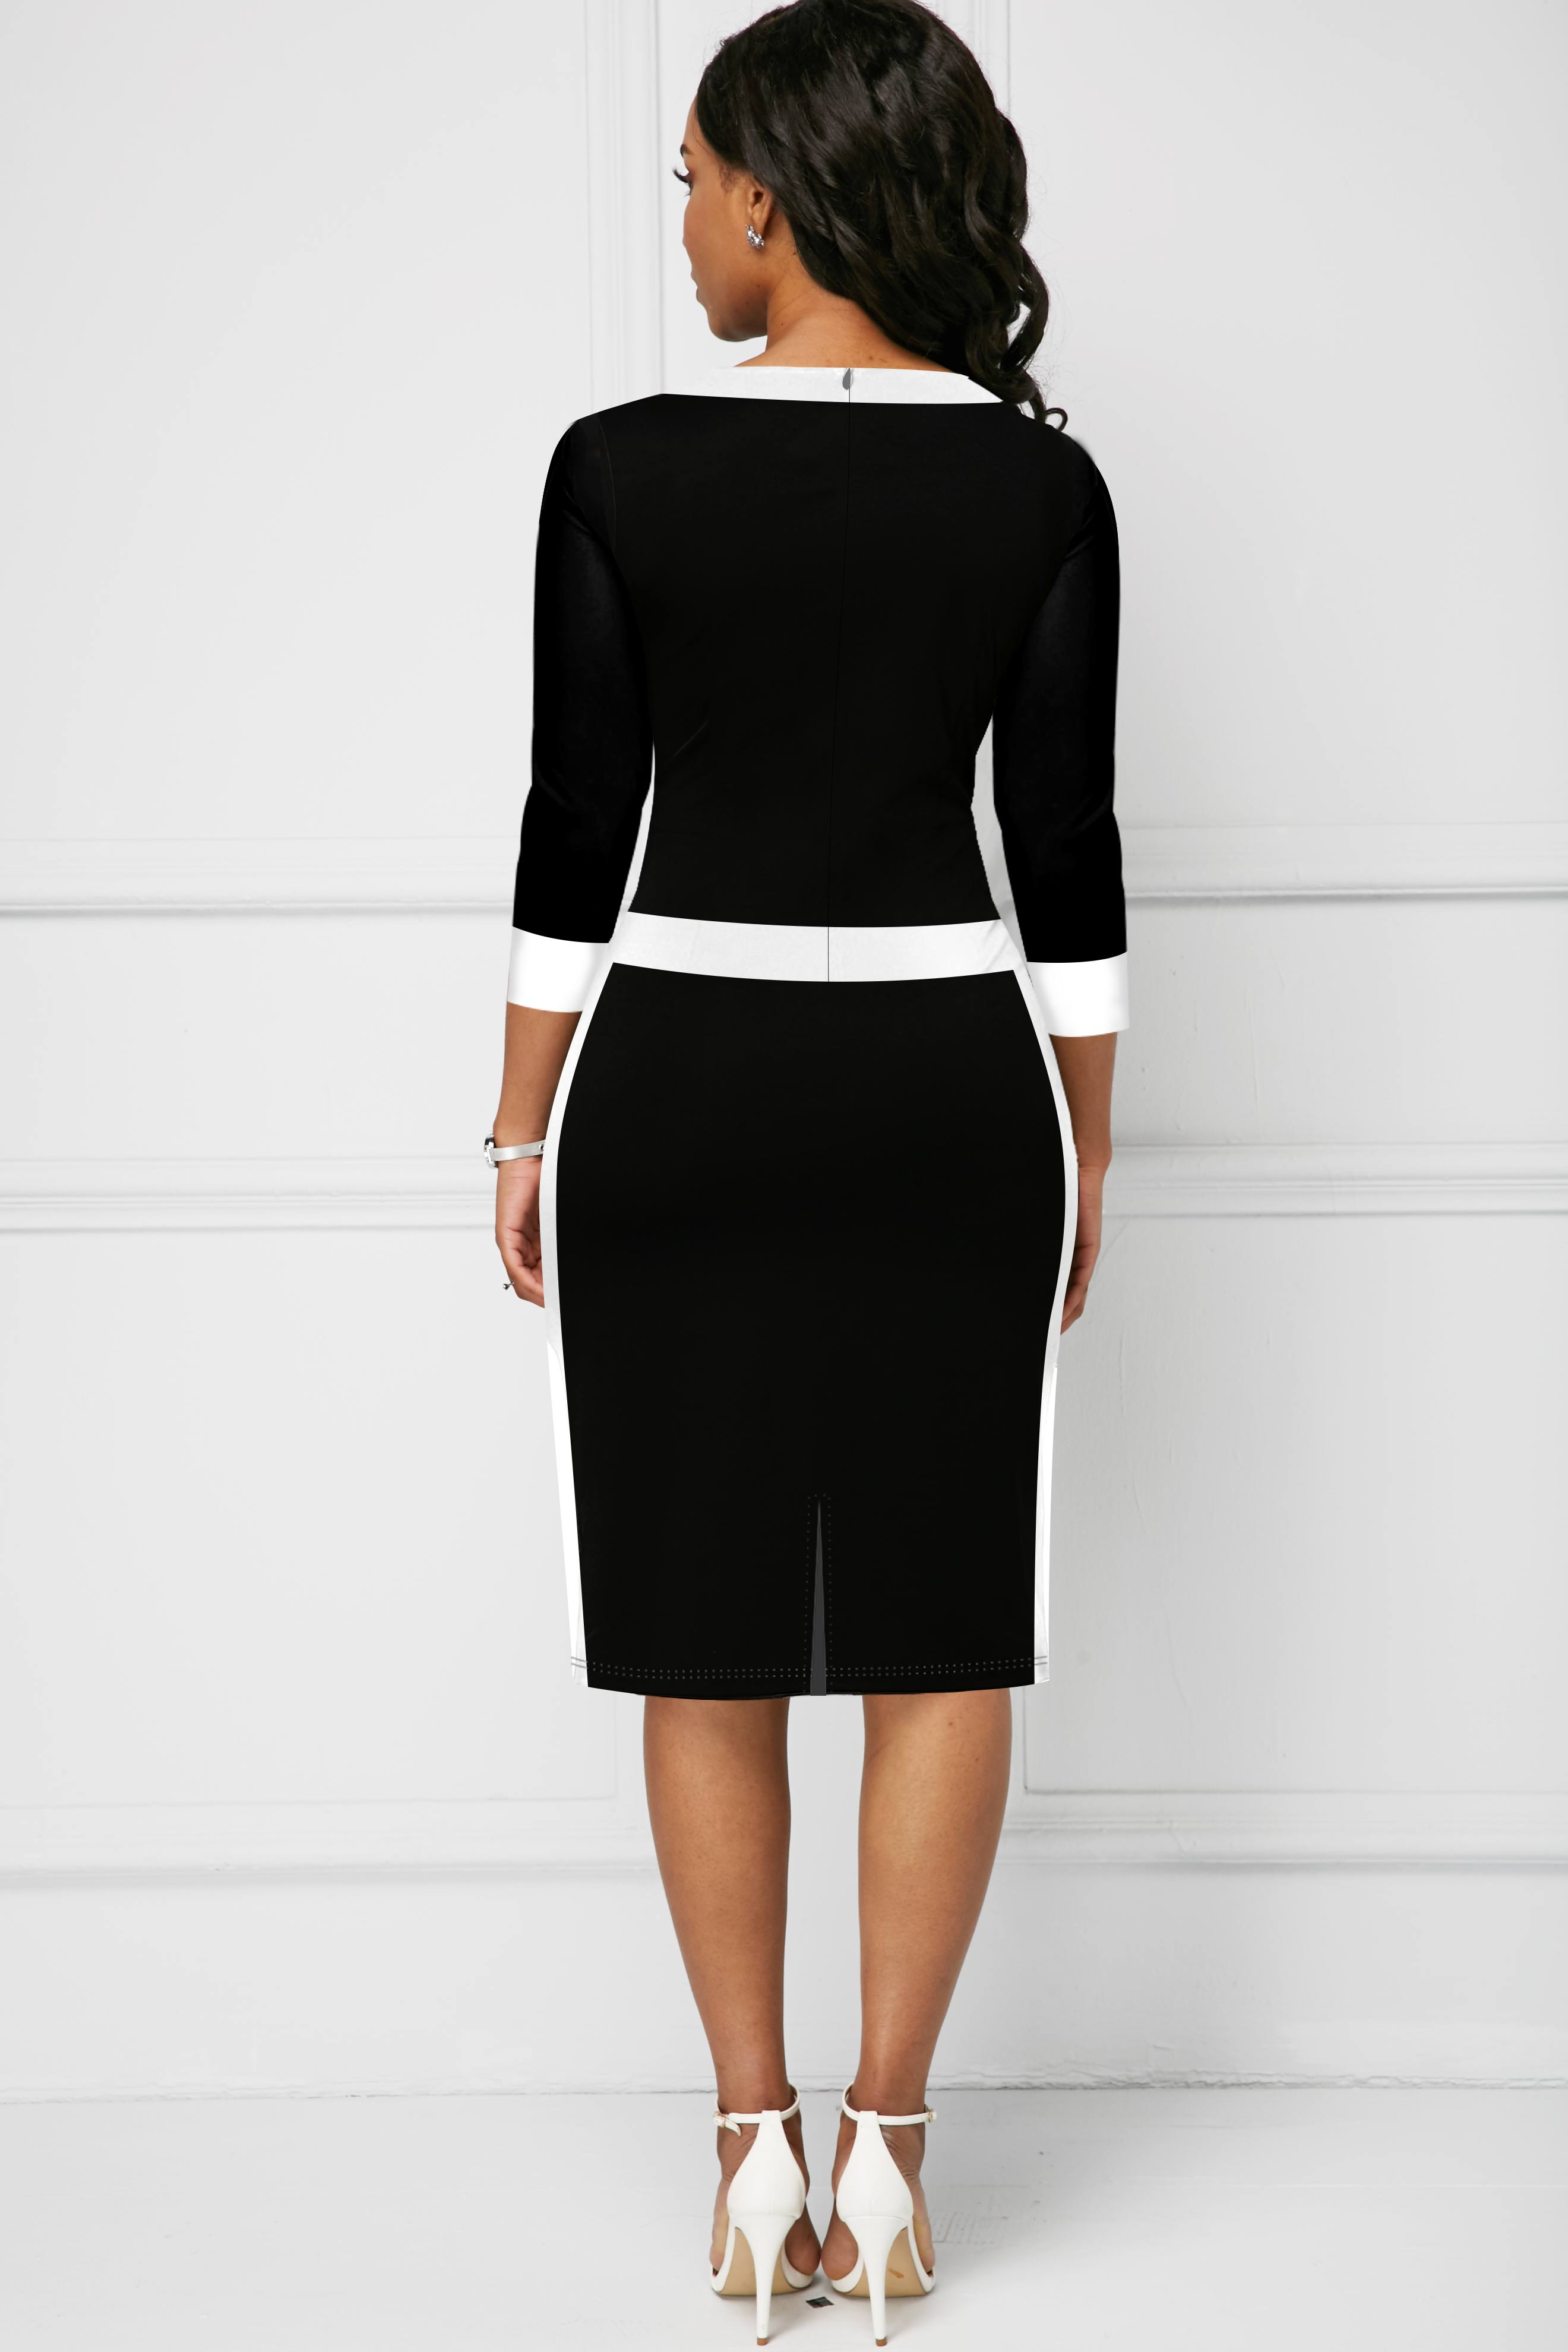 Bowknot Contrast Piping 3/4 Sleeve Dress